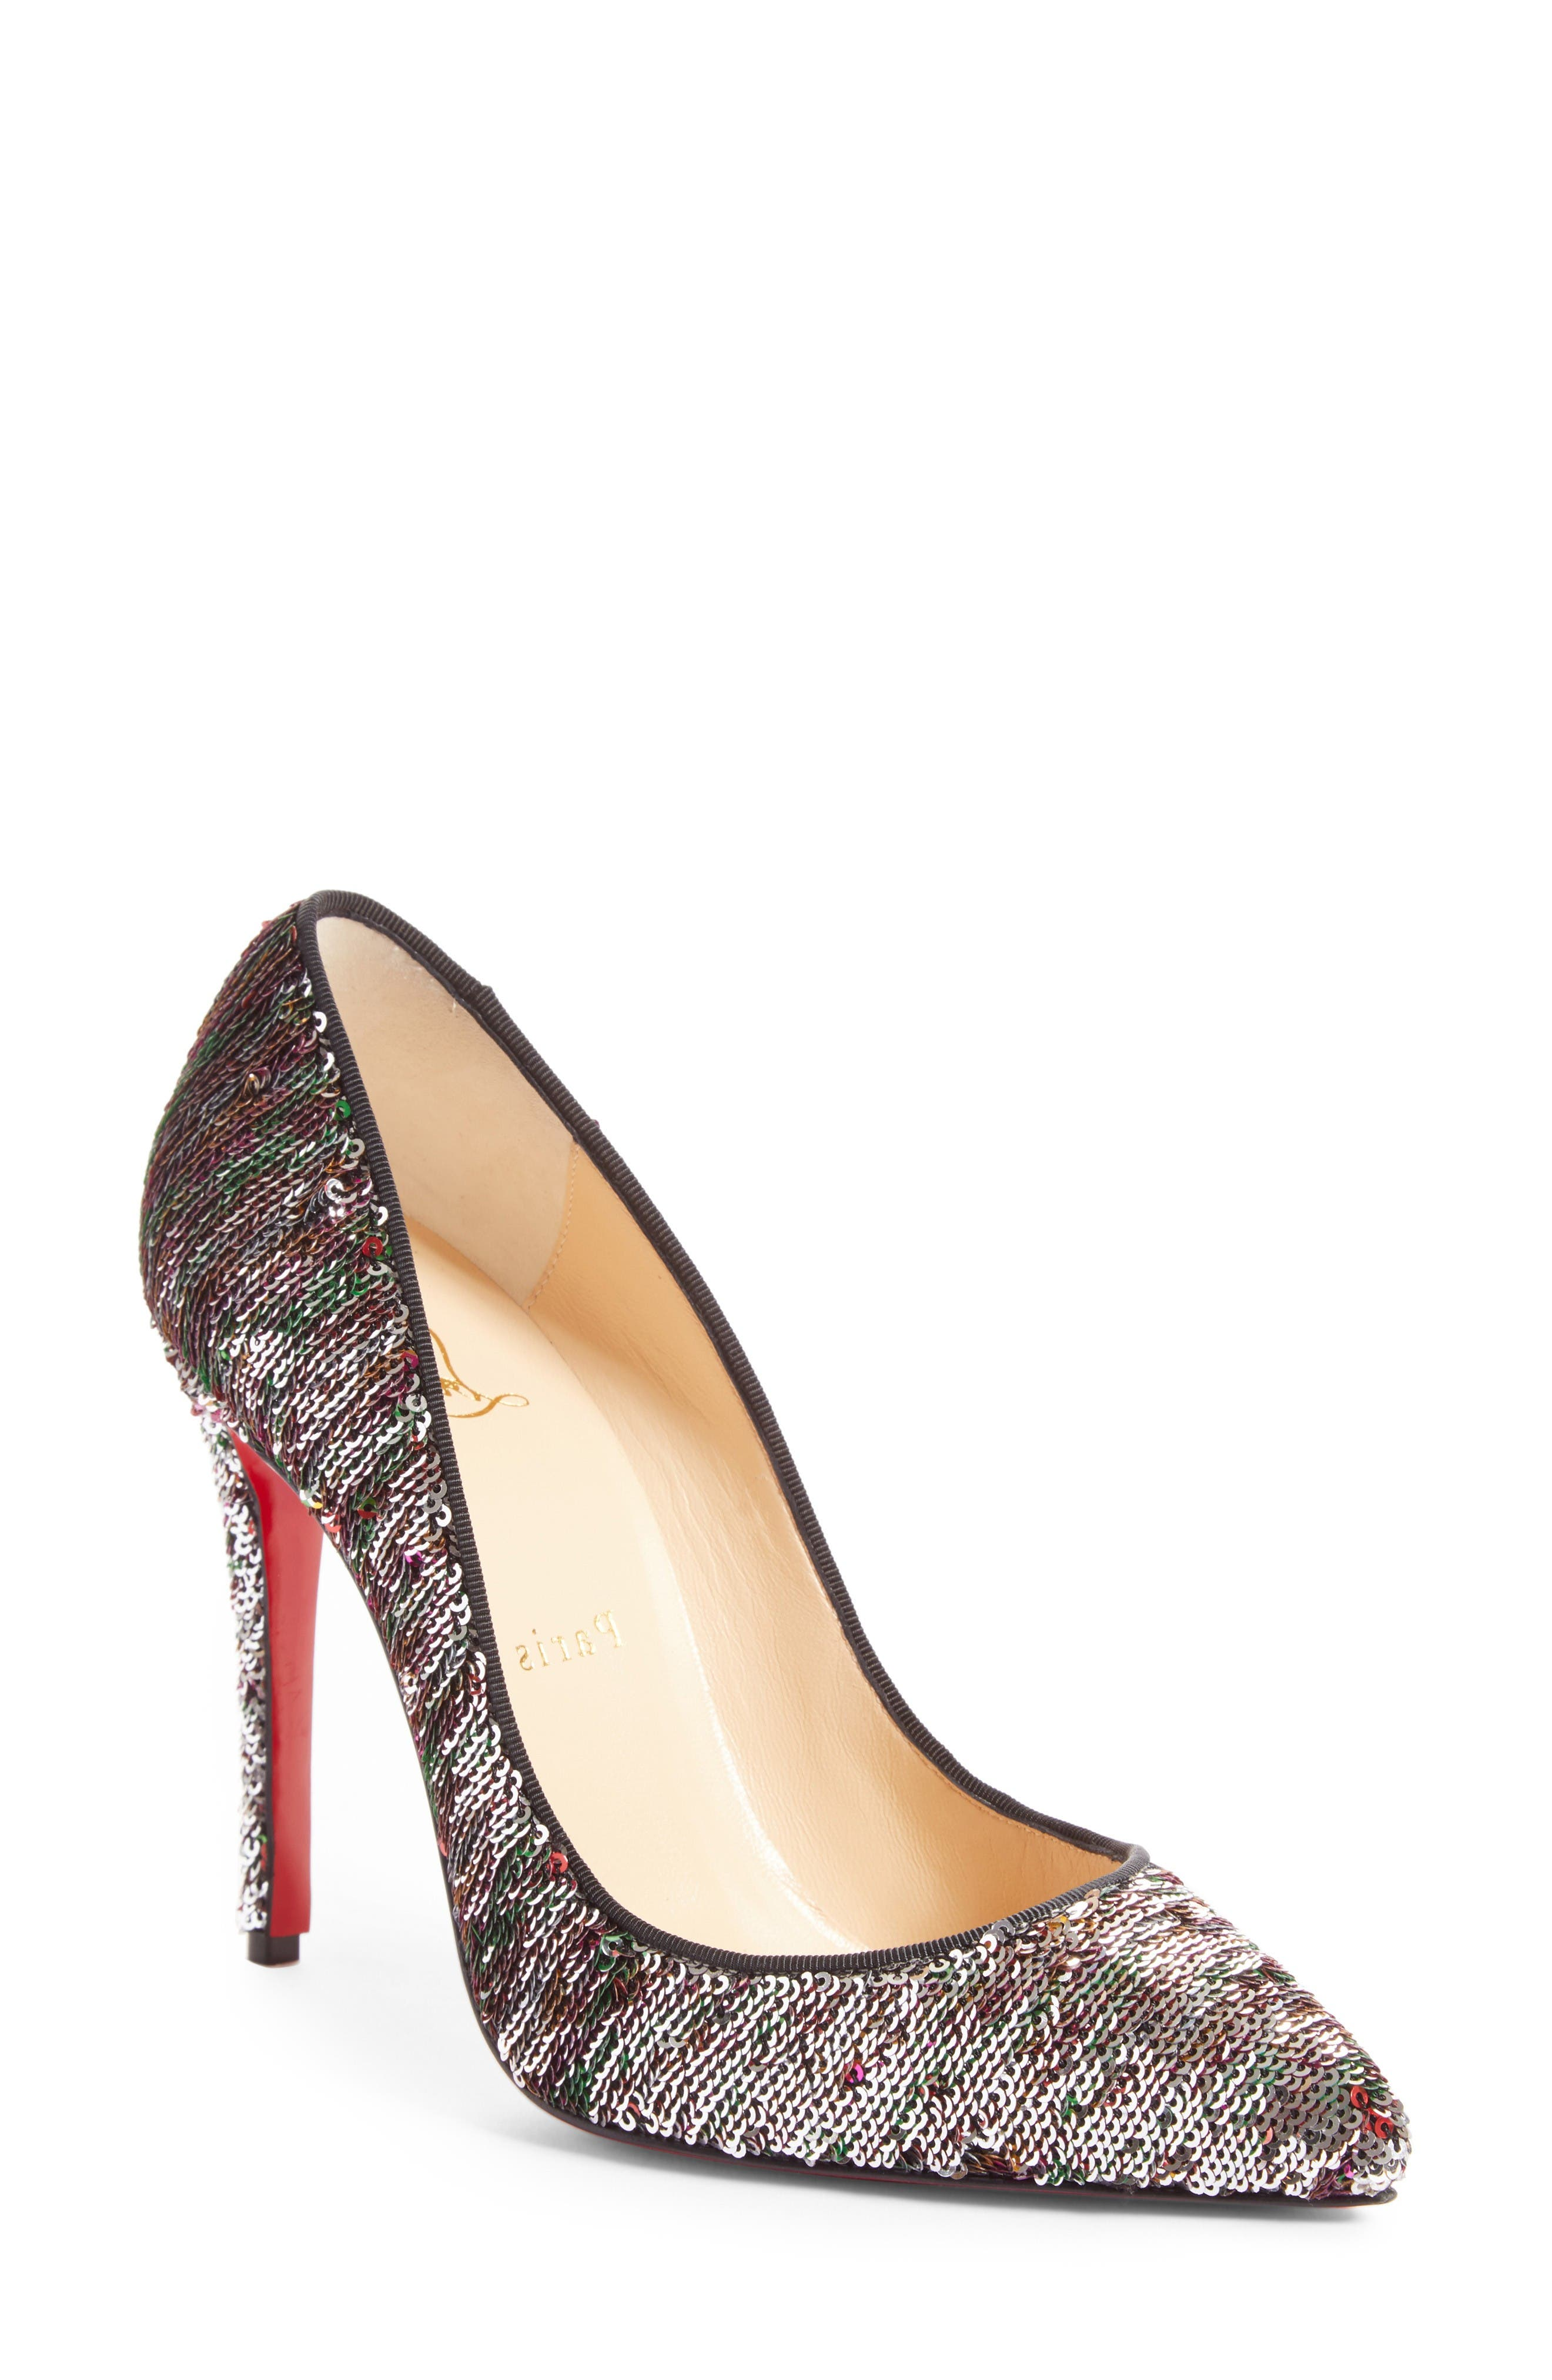 Main Image - Christian Louboutin Pigalle Follies Sequin Pointy Toe Pump (Women)